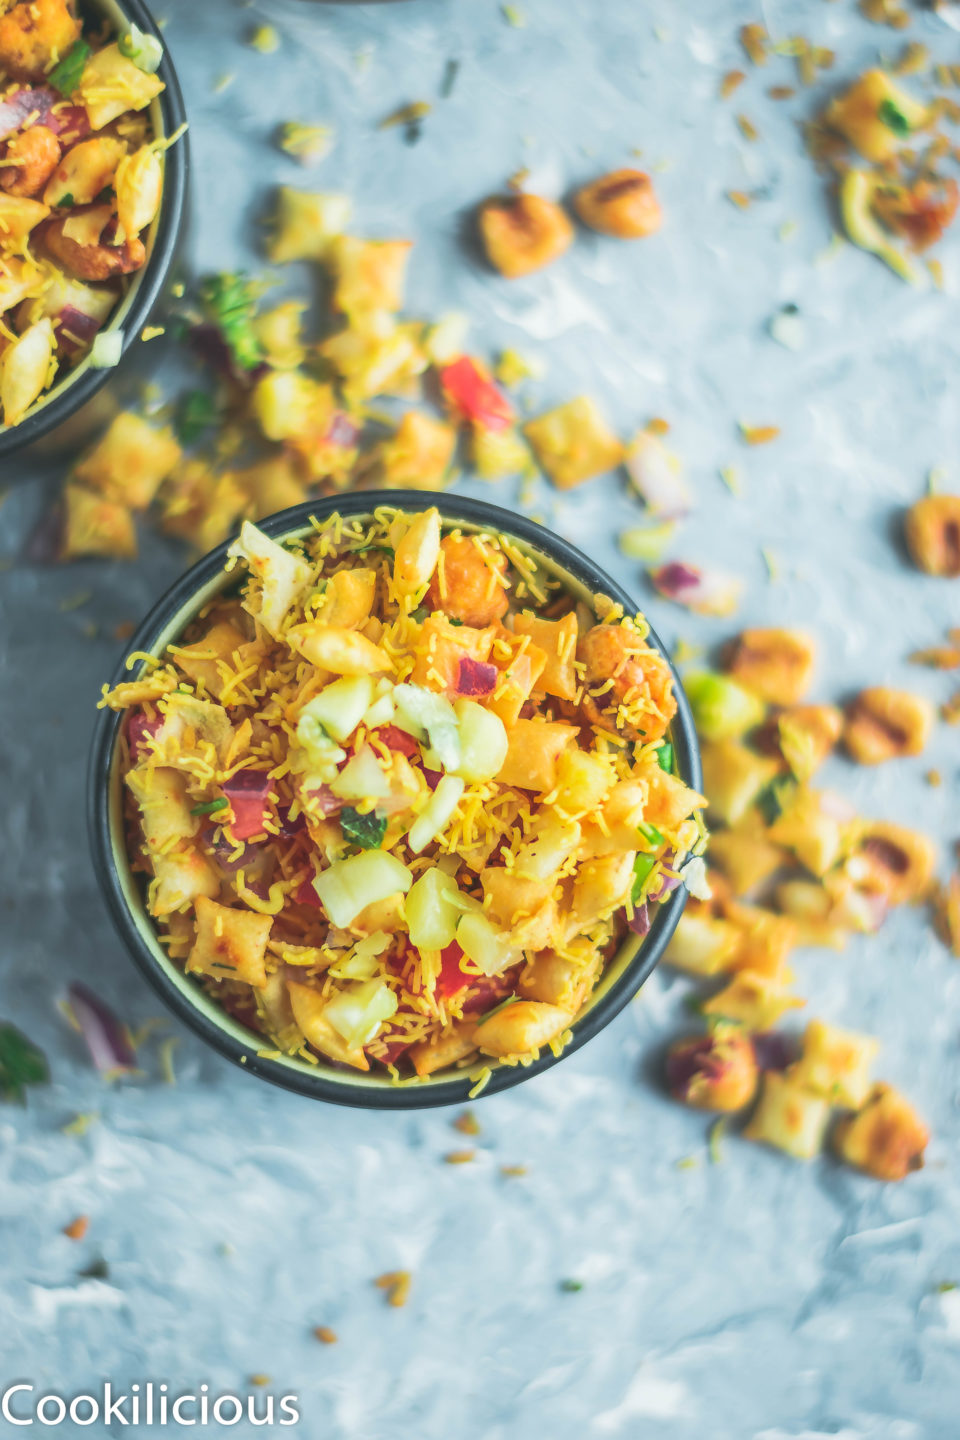 top angle shot of one bowl filled with 2 bowls containing Crispy & Masaledar Cheeselings Bhel